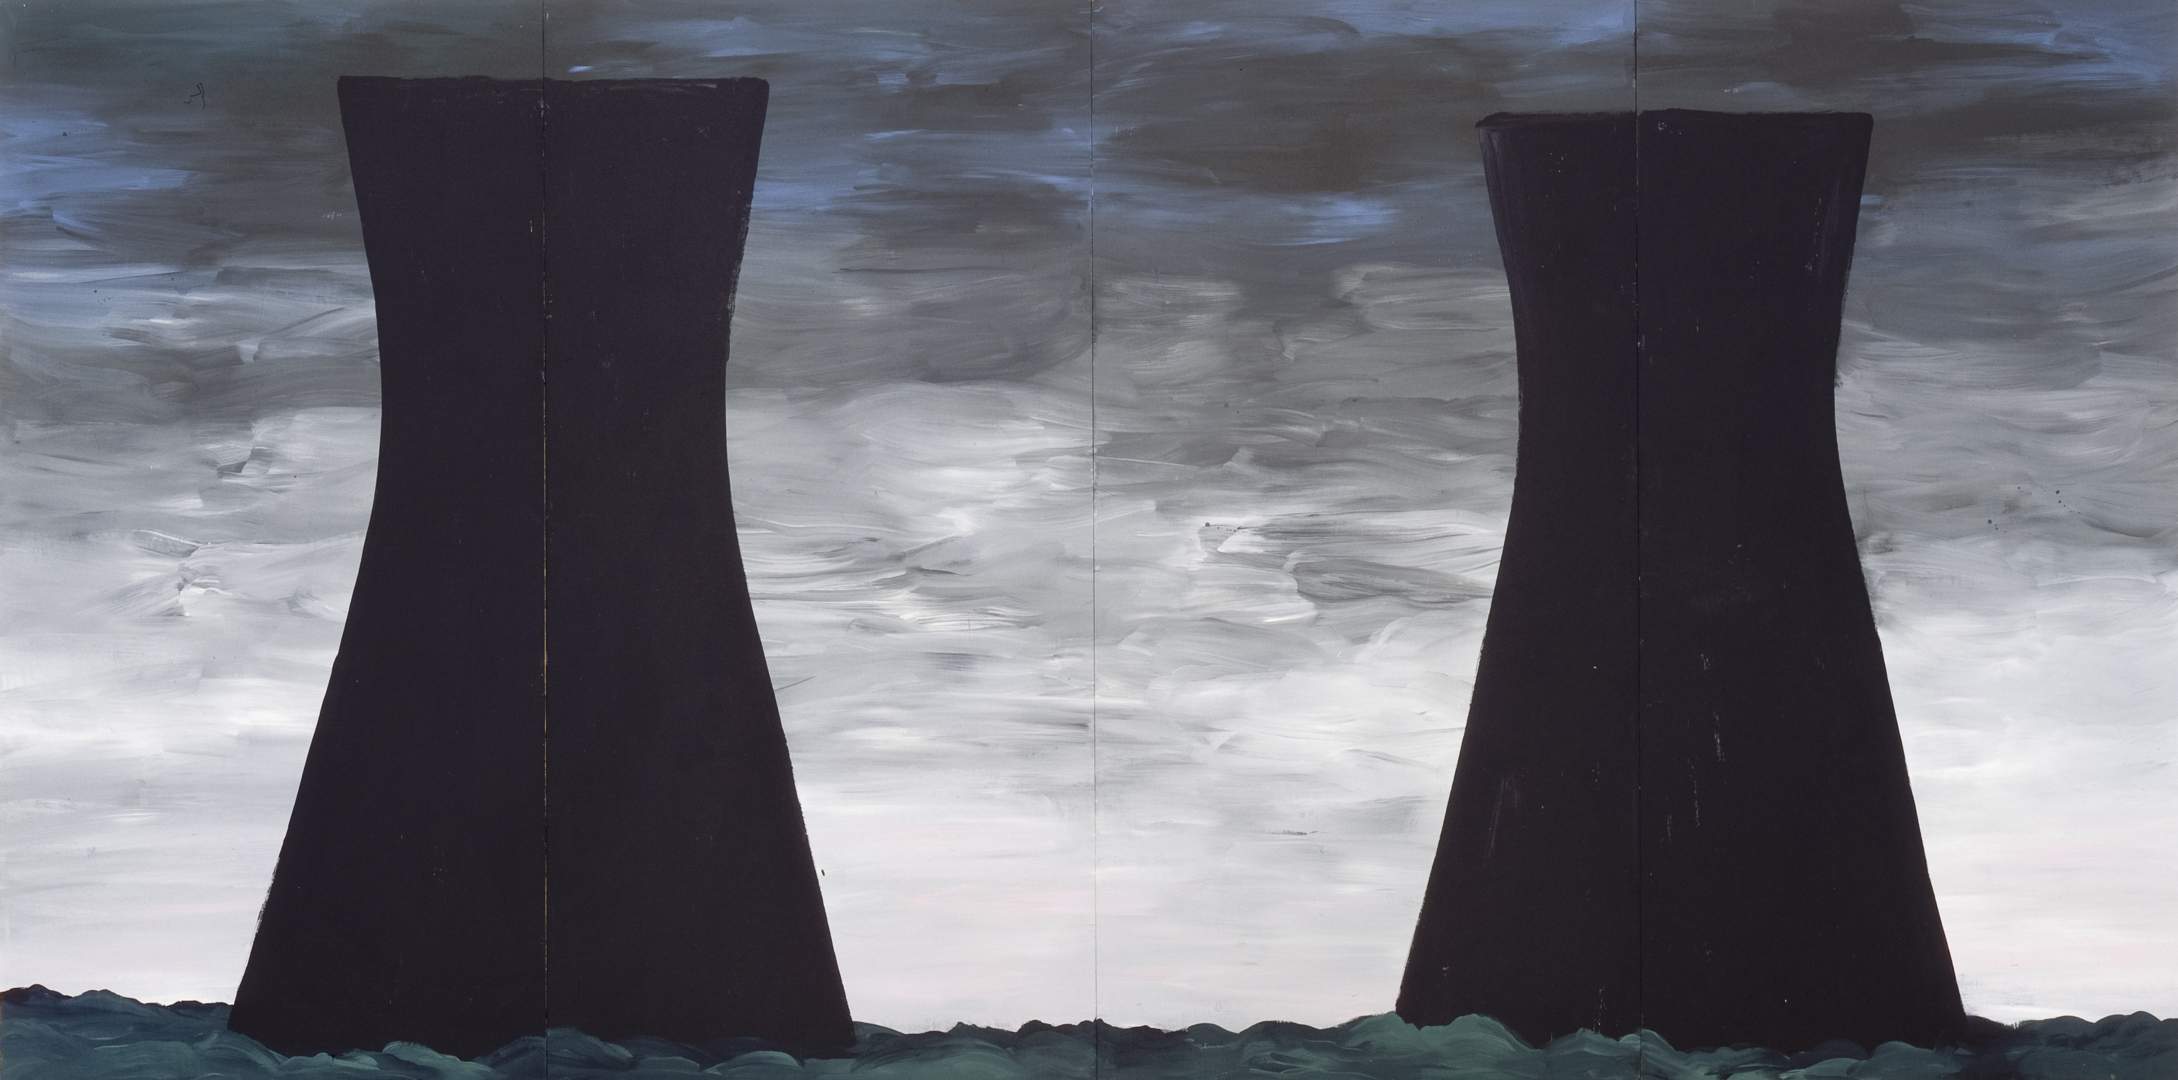 Four painted panels assembled side by side depict the cooling towers of a nuclear power plant. The two almost identical black masses stand out against a leaden sky. They loom above treetops that form a low horizon line.